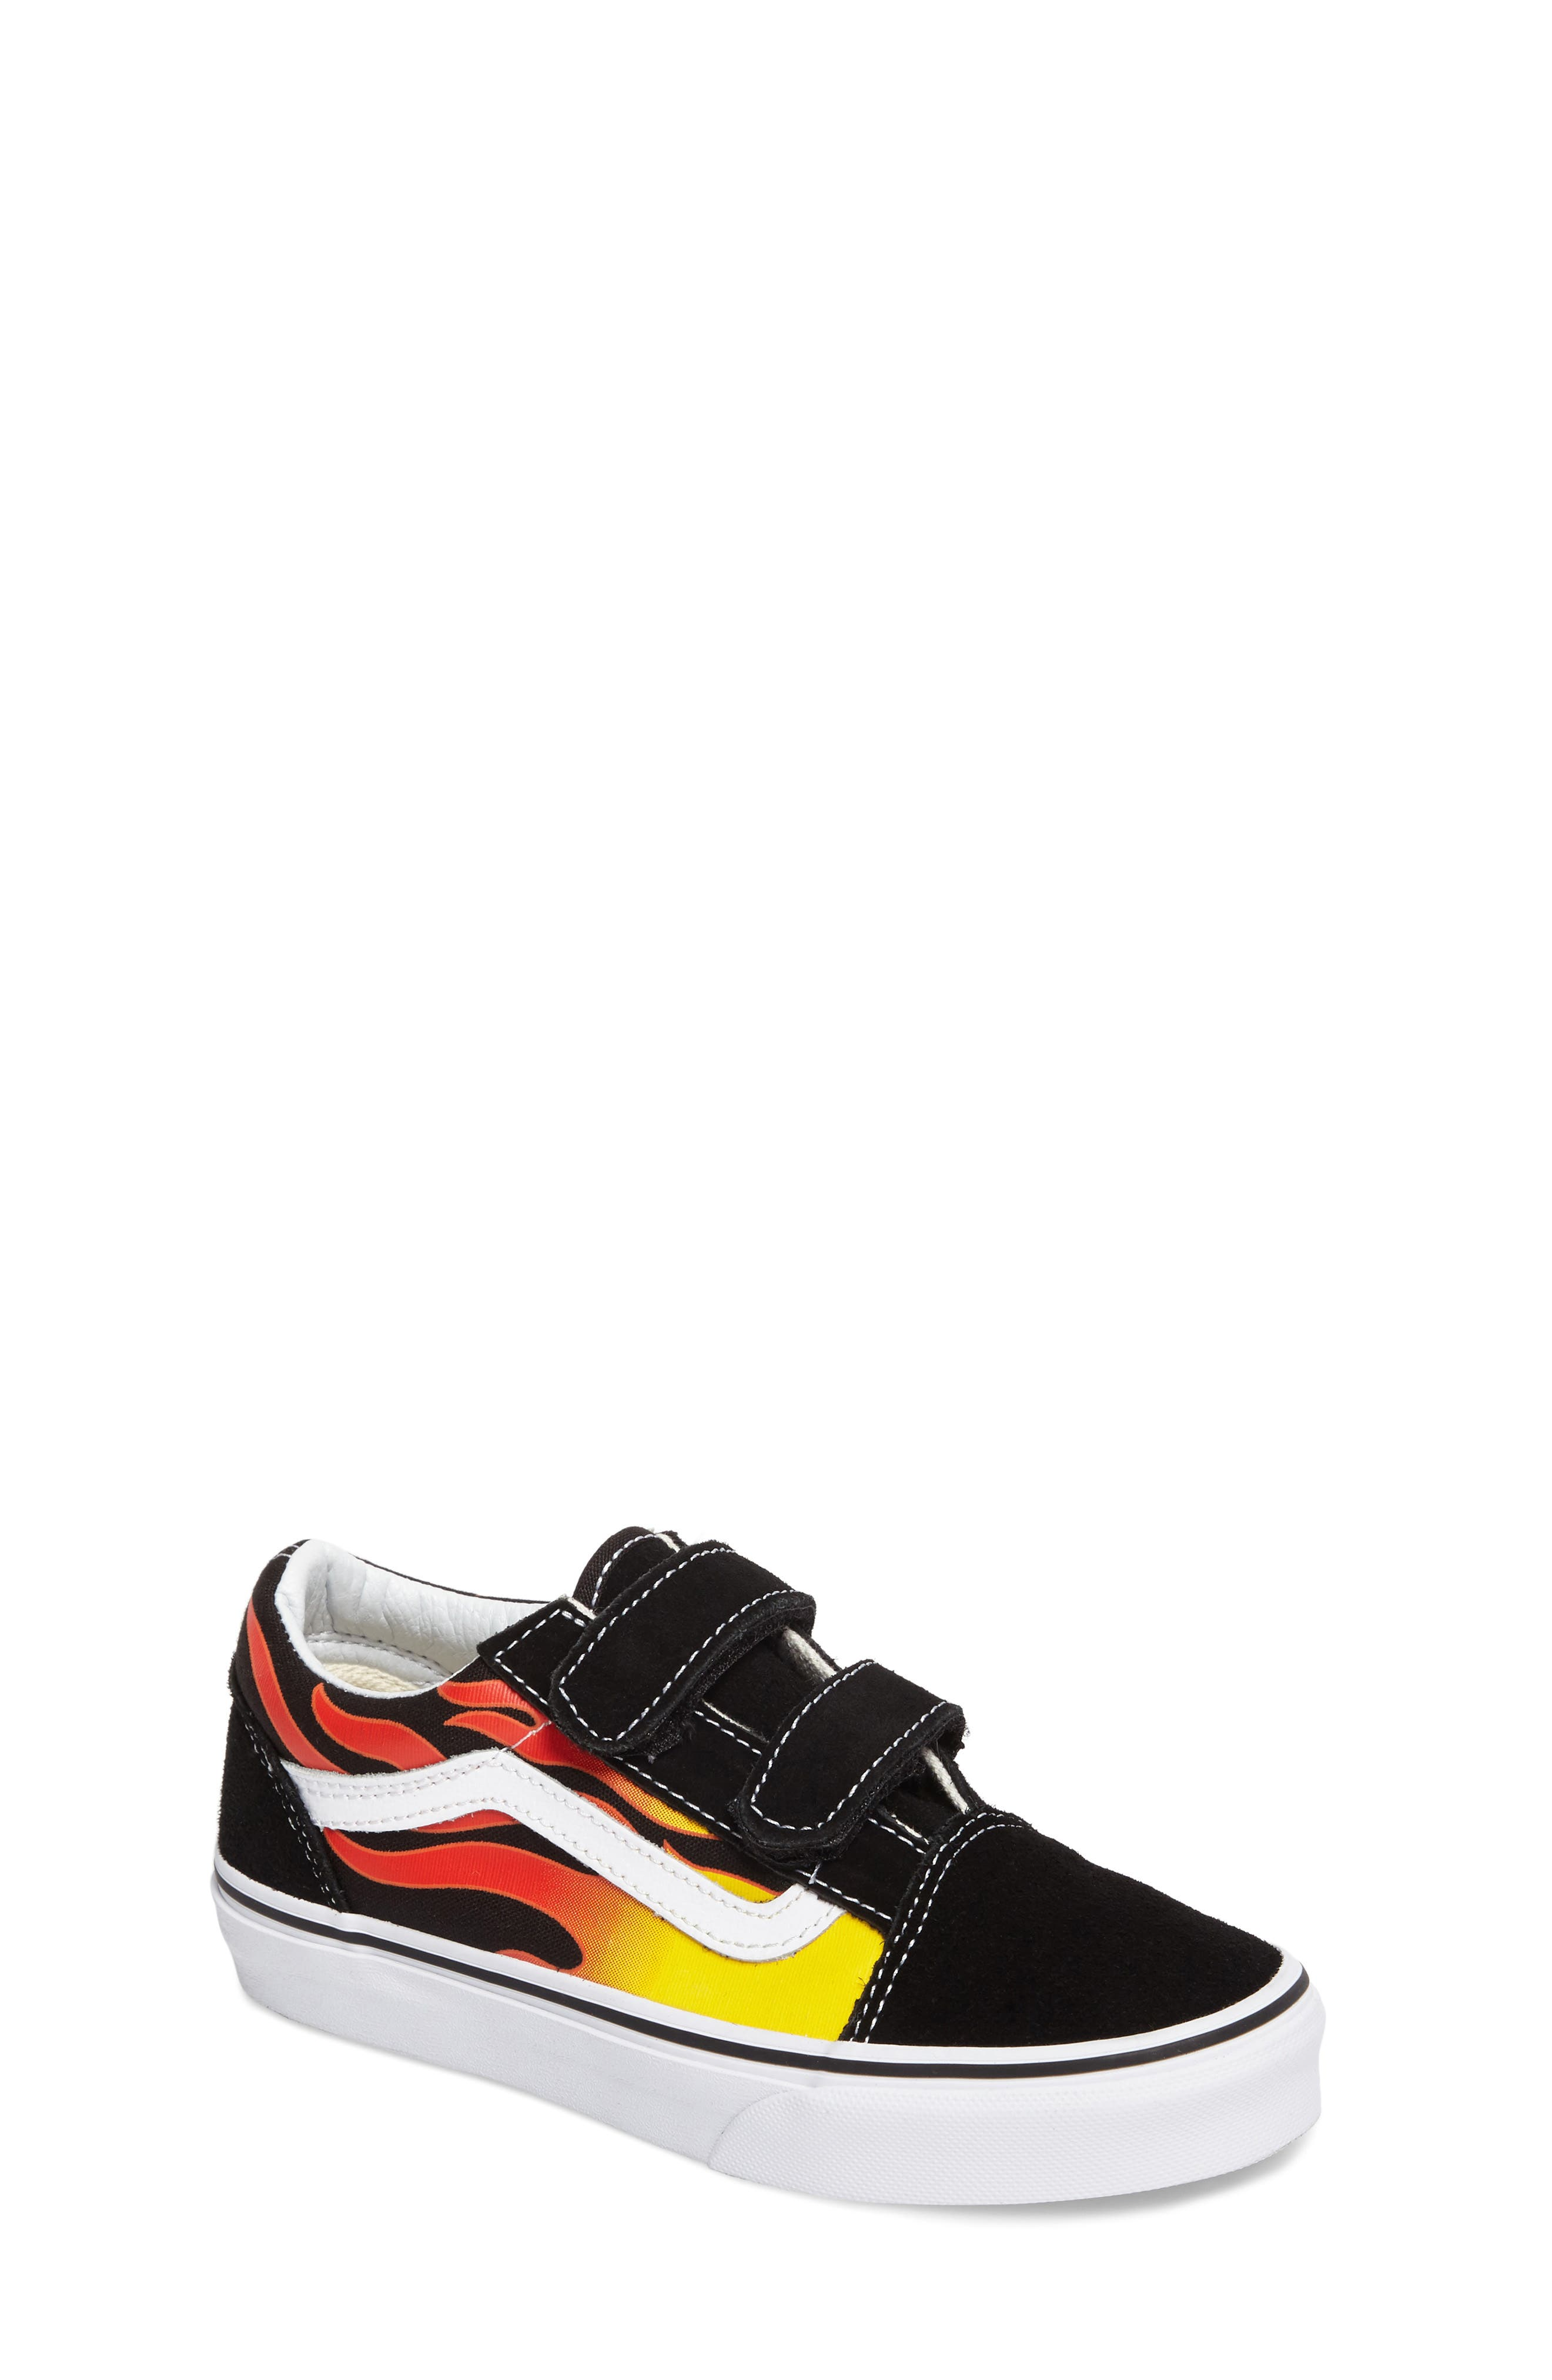 Old Skool V Sneaker,                         Main,                         color, 001